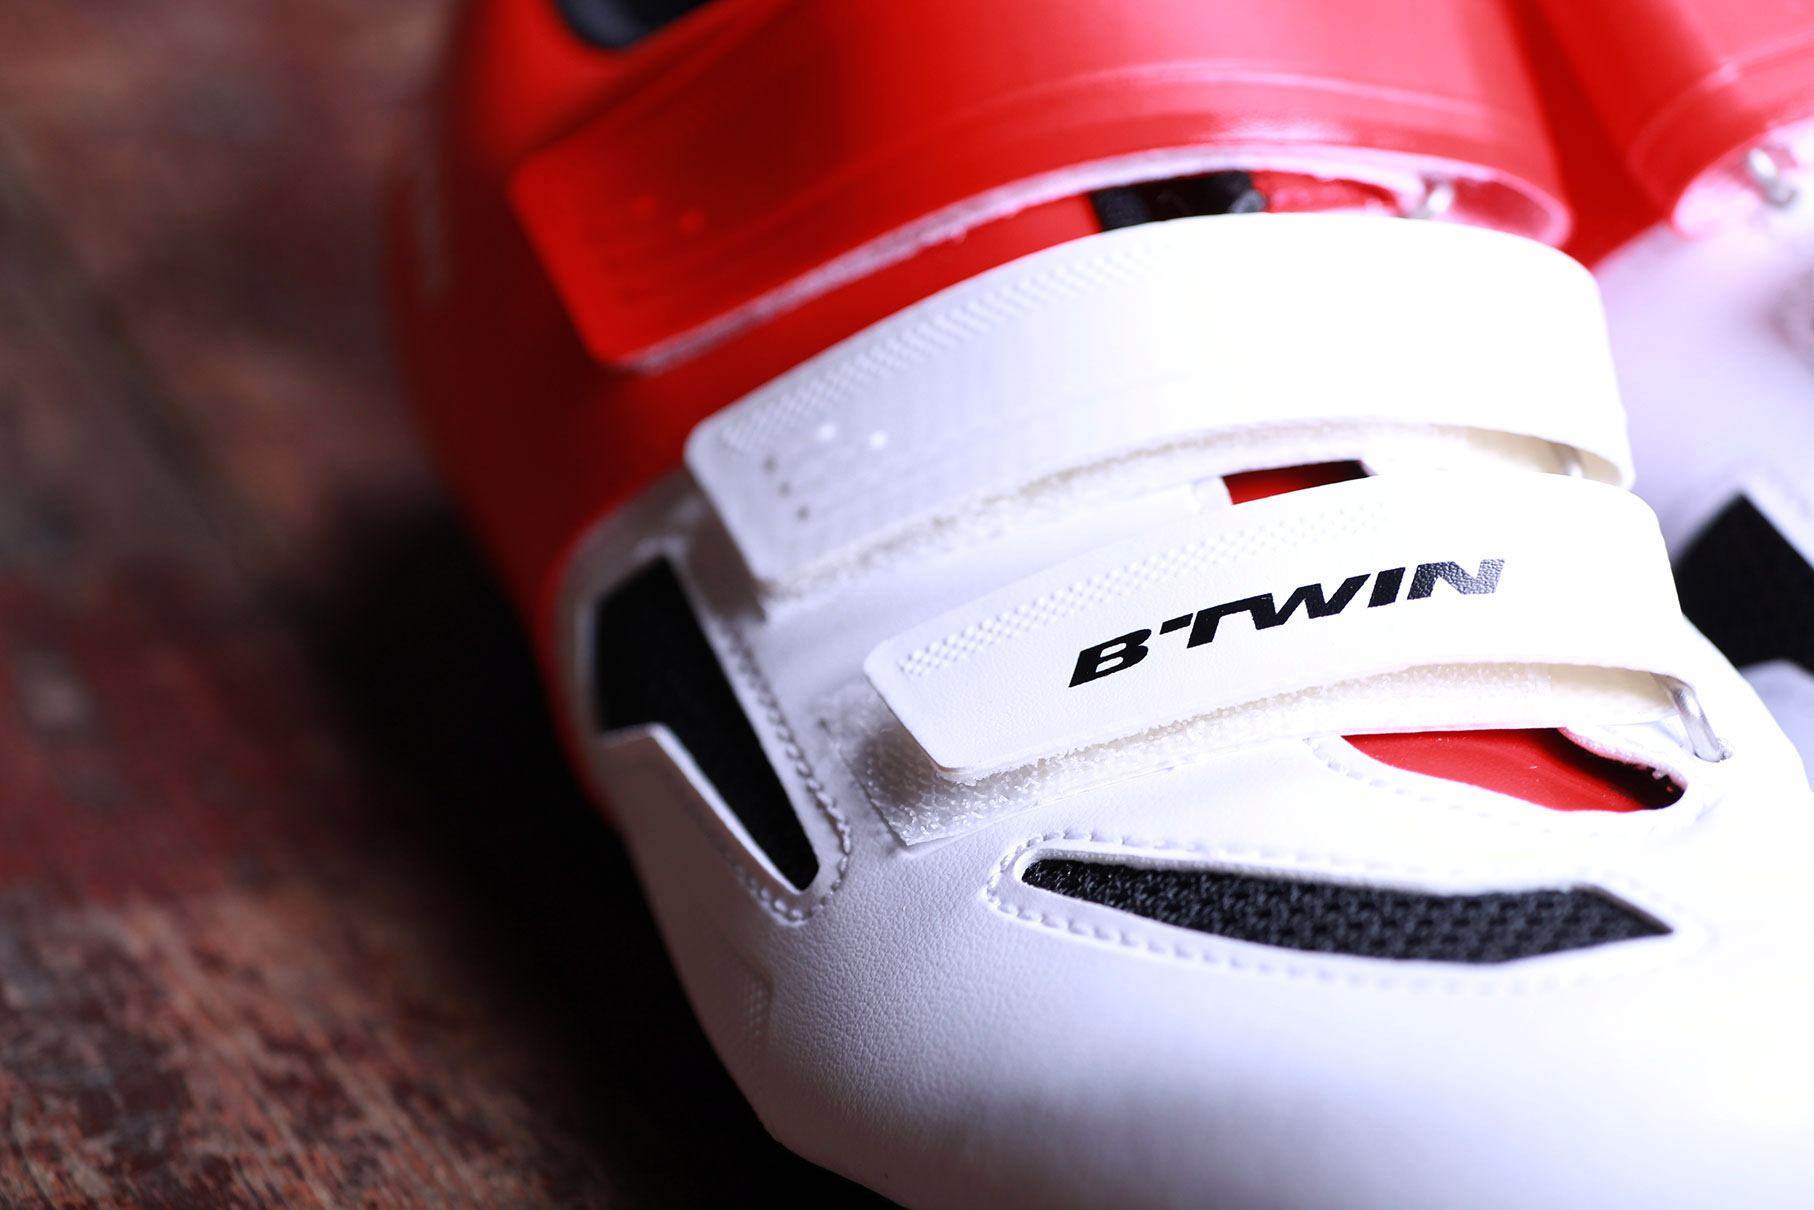 500 cc Road ReviewB'twin Cycling ShoesRoad kPnwOX80